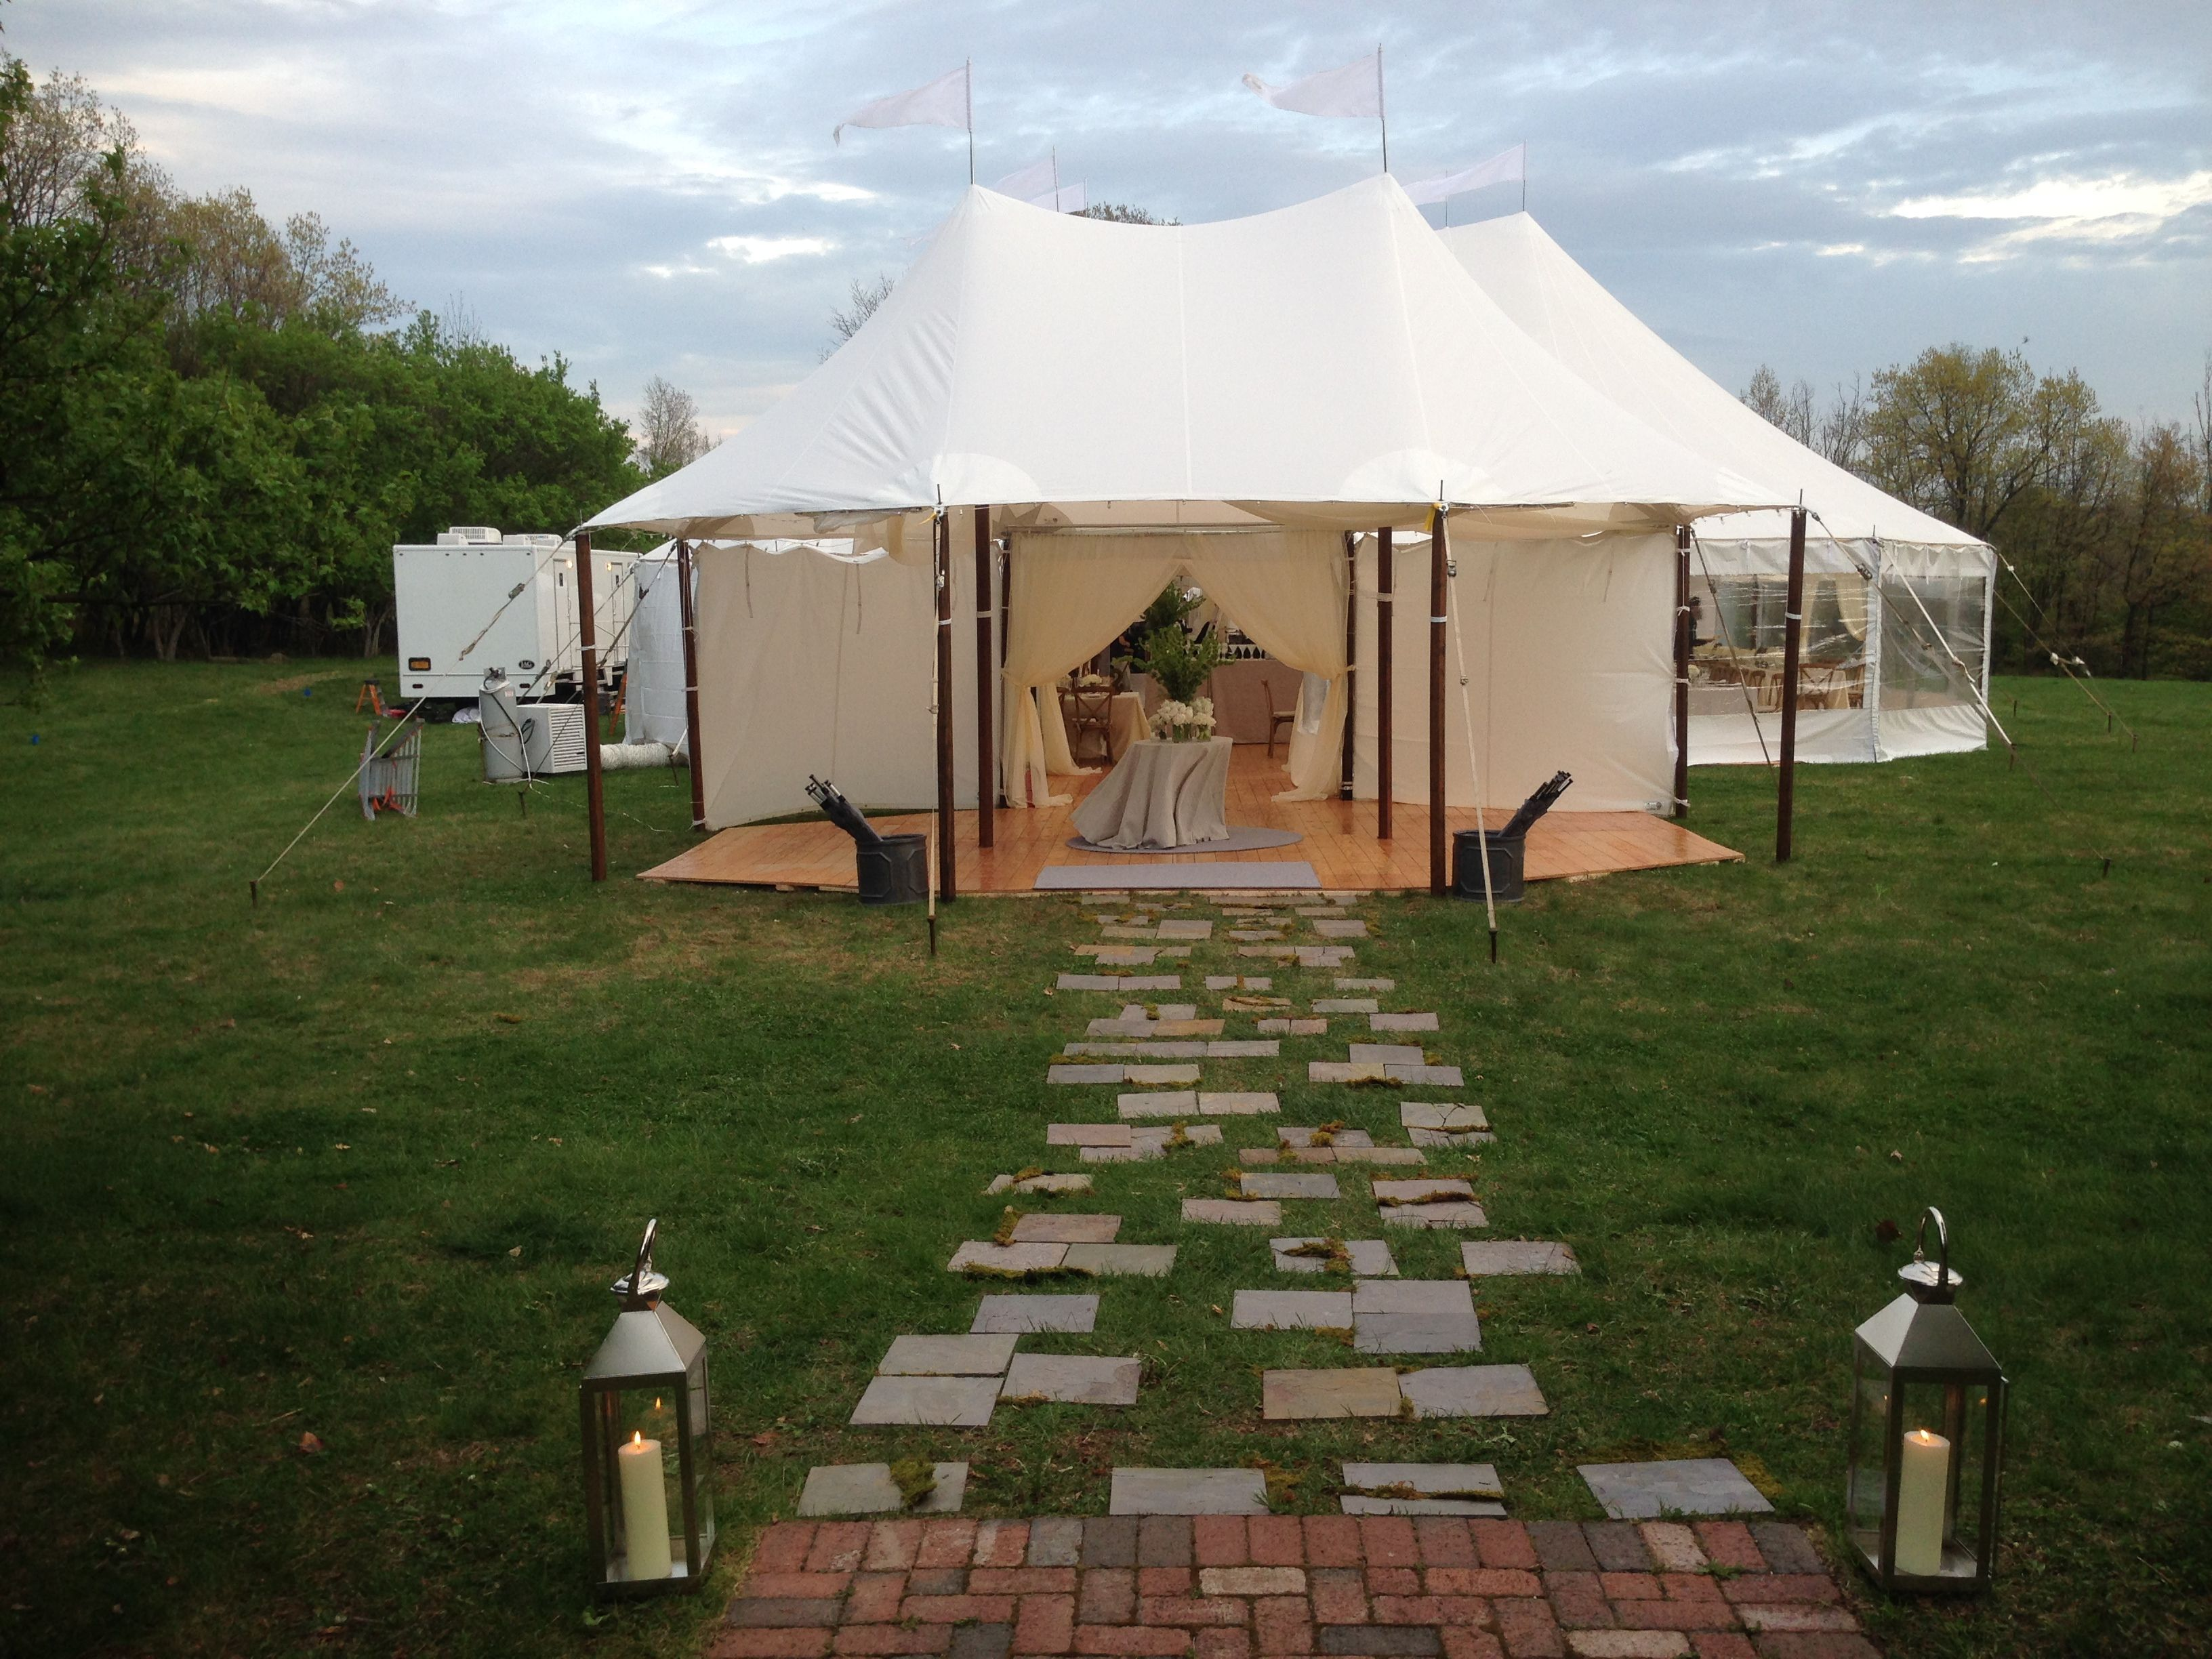 Colin Cowie Celebrations used our tidewater tents for an amazing entryway/dinner tent. & Colin Cowie Celebrations used our tidewater tents for an amazing ...